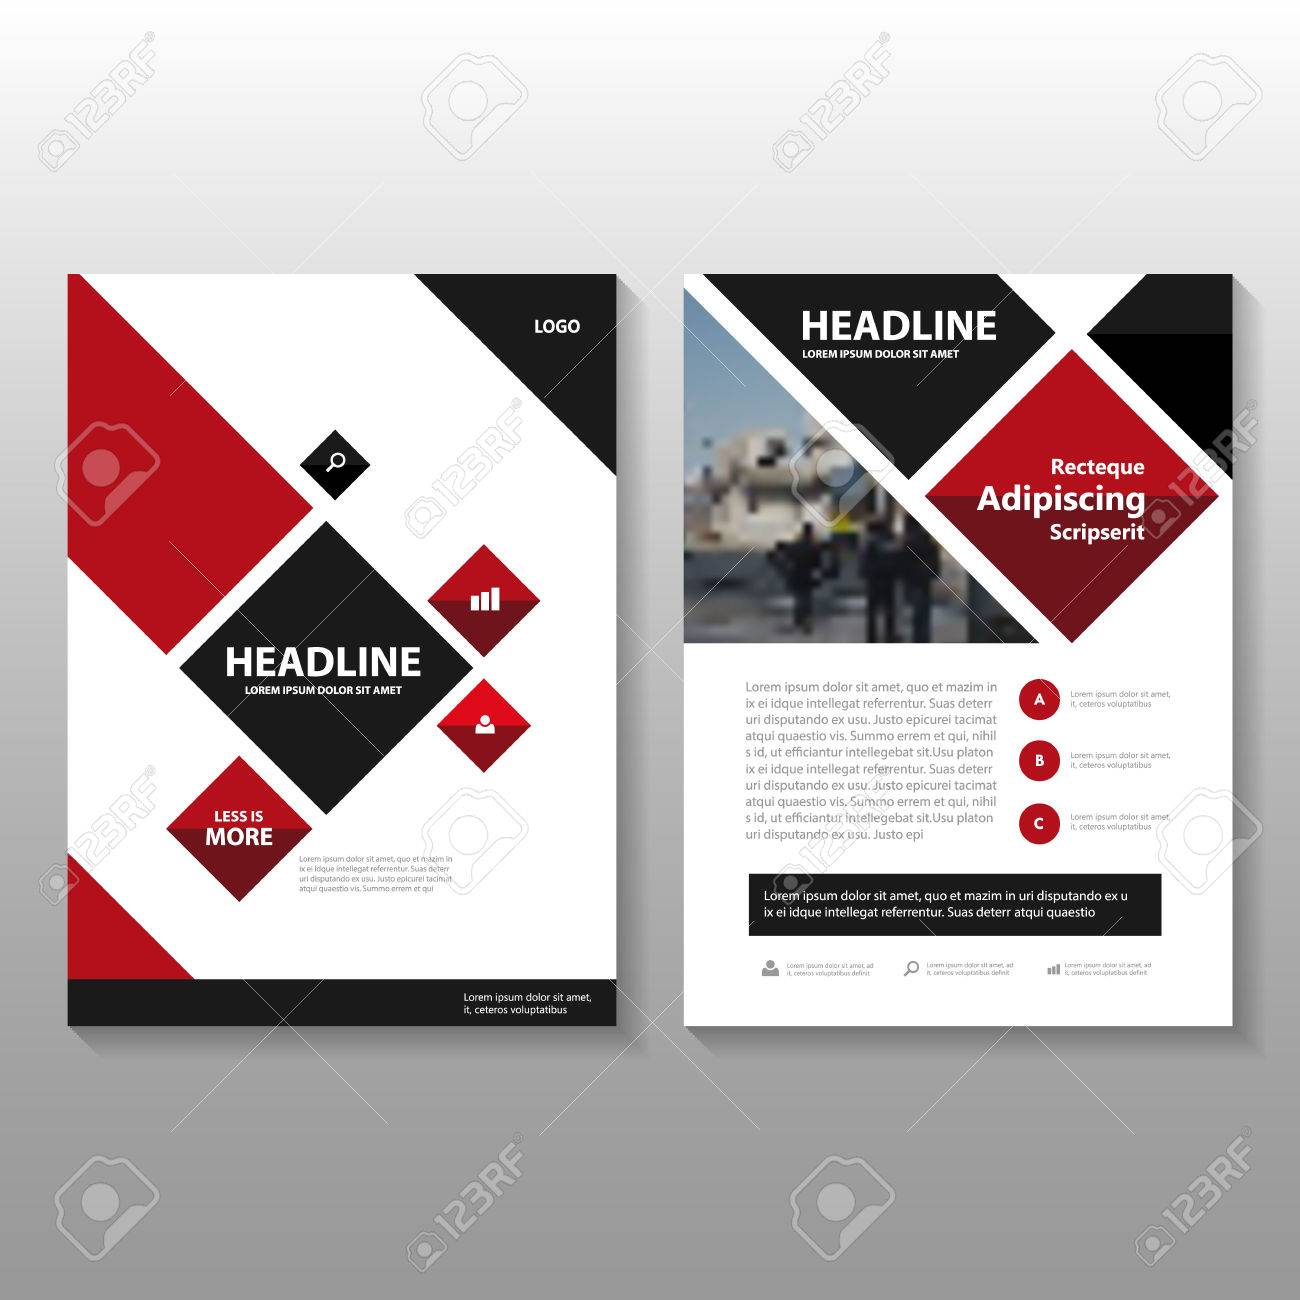 Red black Square Vector annual report Leaflet Brochure Flyer template design, book cover layout design, Abstract red black presentation templates - 54785797